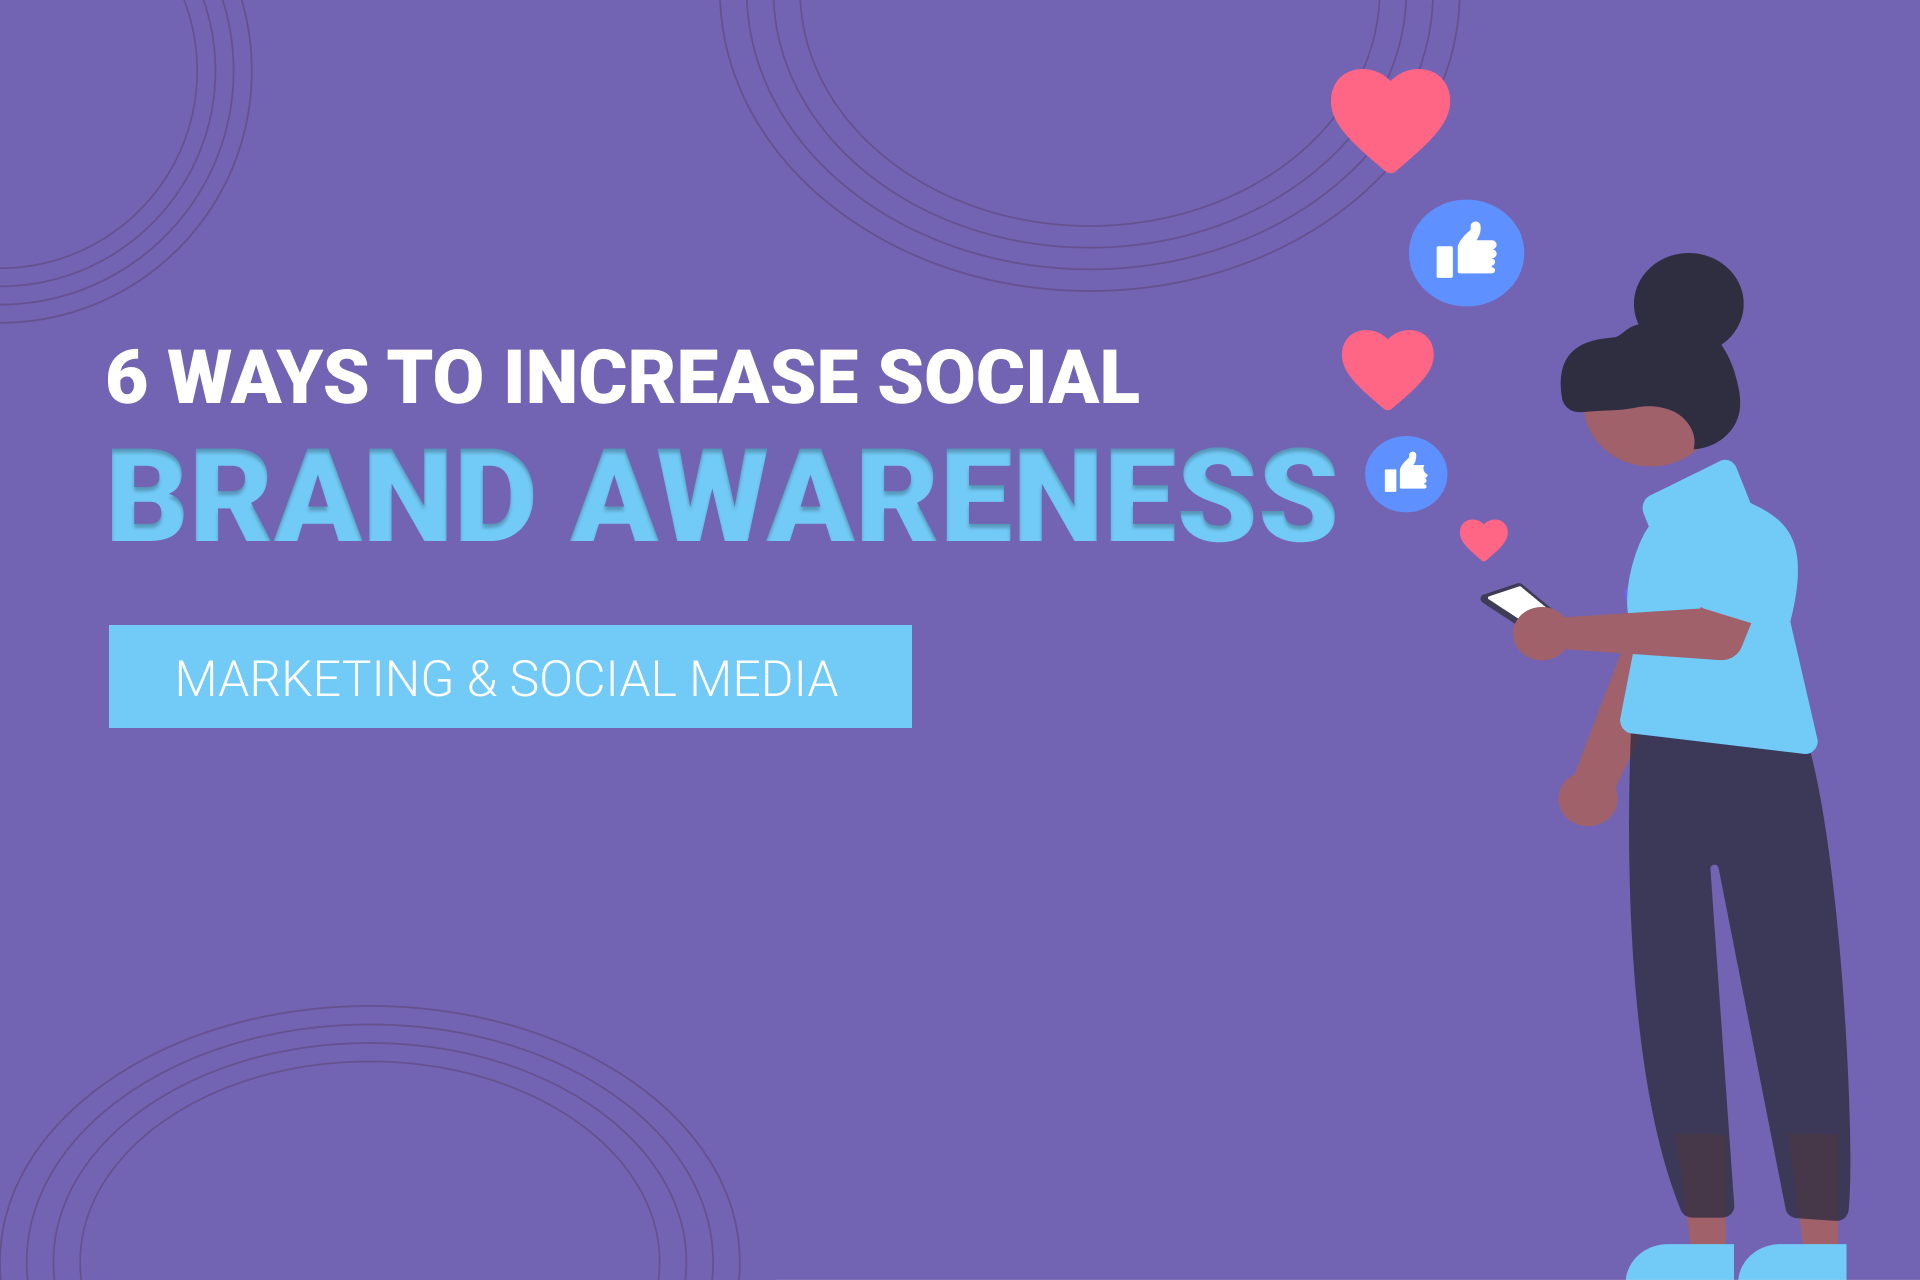 6 Cost Effective Ways To Increase Brand Awareness On Social Media